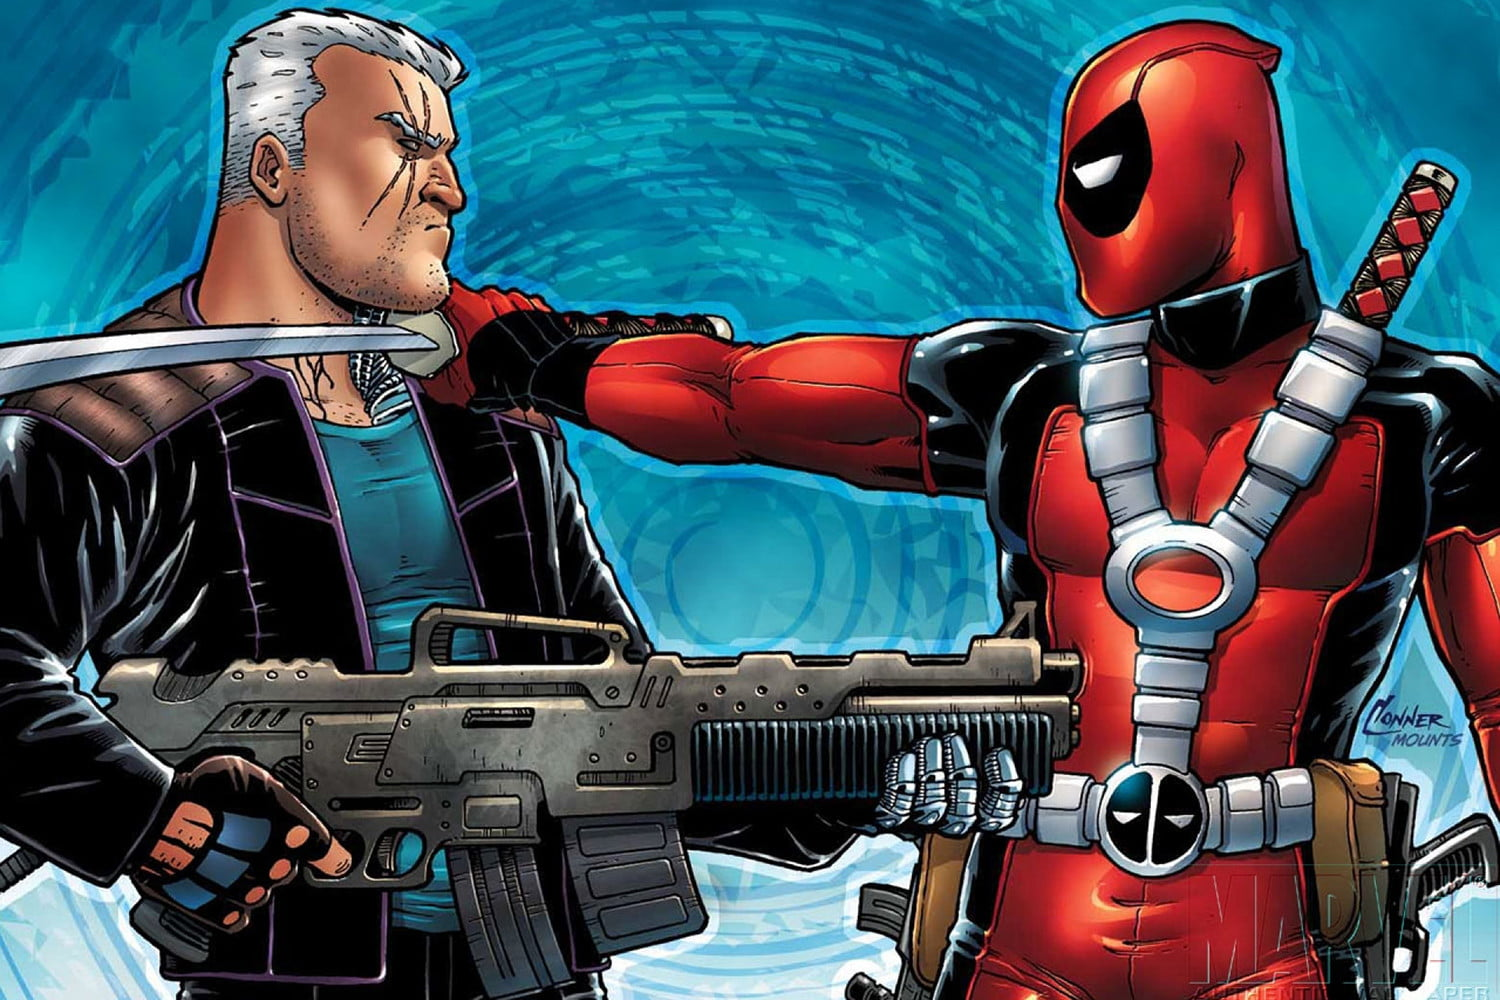 Deadpool dossier: Everything you need to know about Marvel's R-rated star